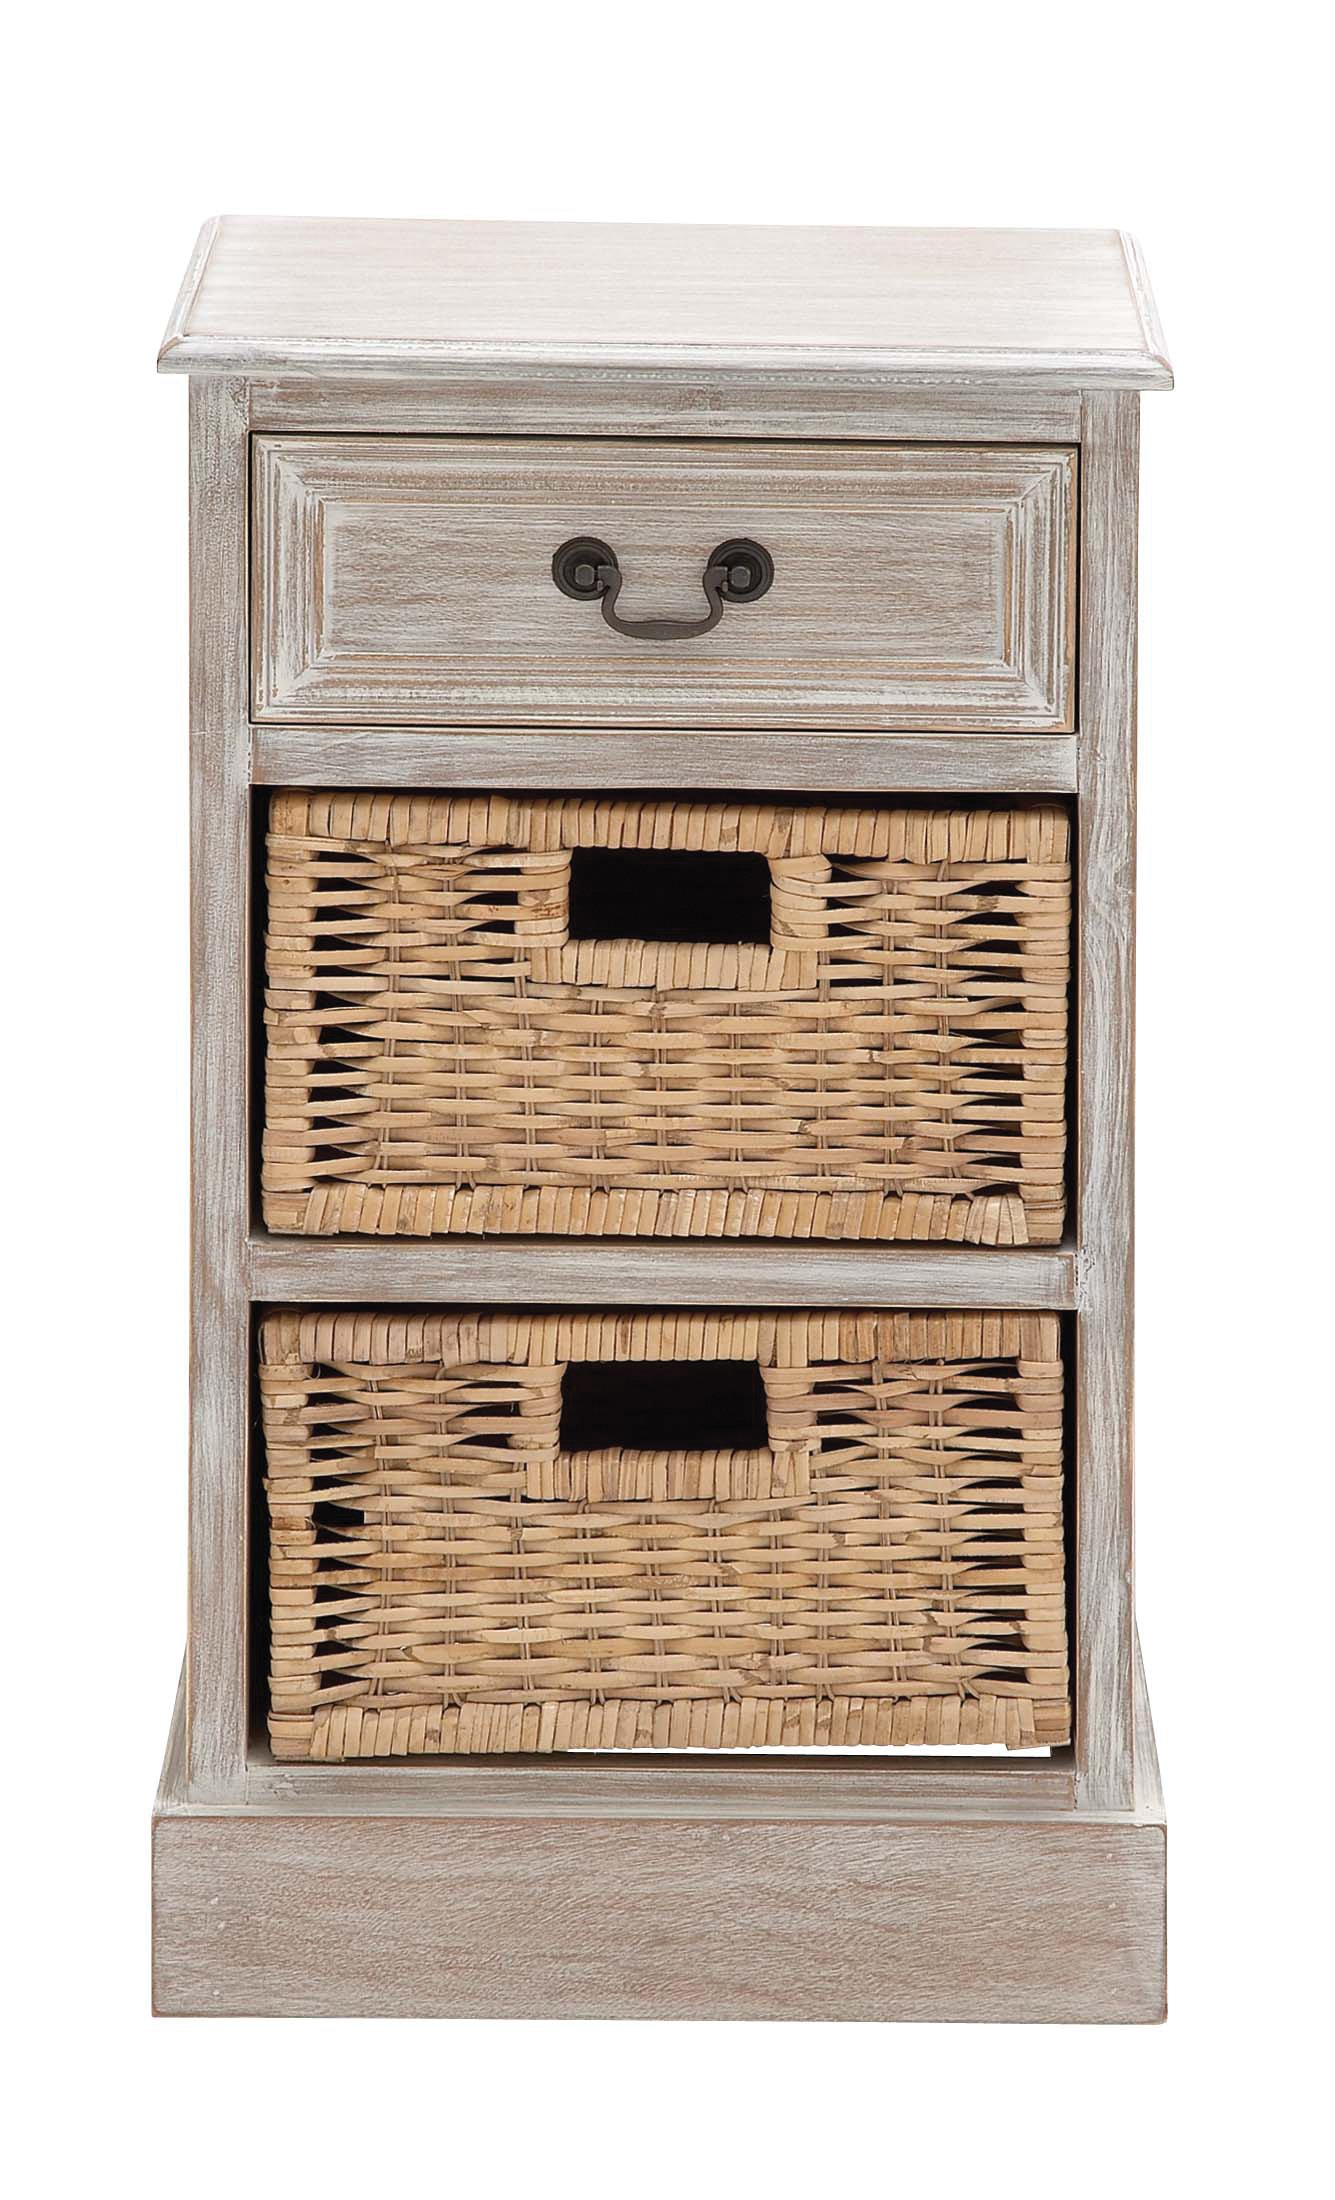 Benzara 96282 The Simple Wood 2-Basket Chest